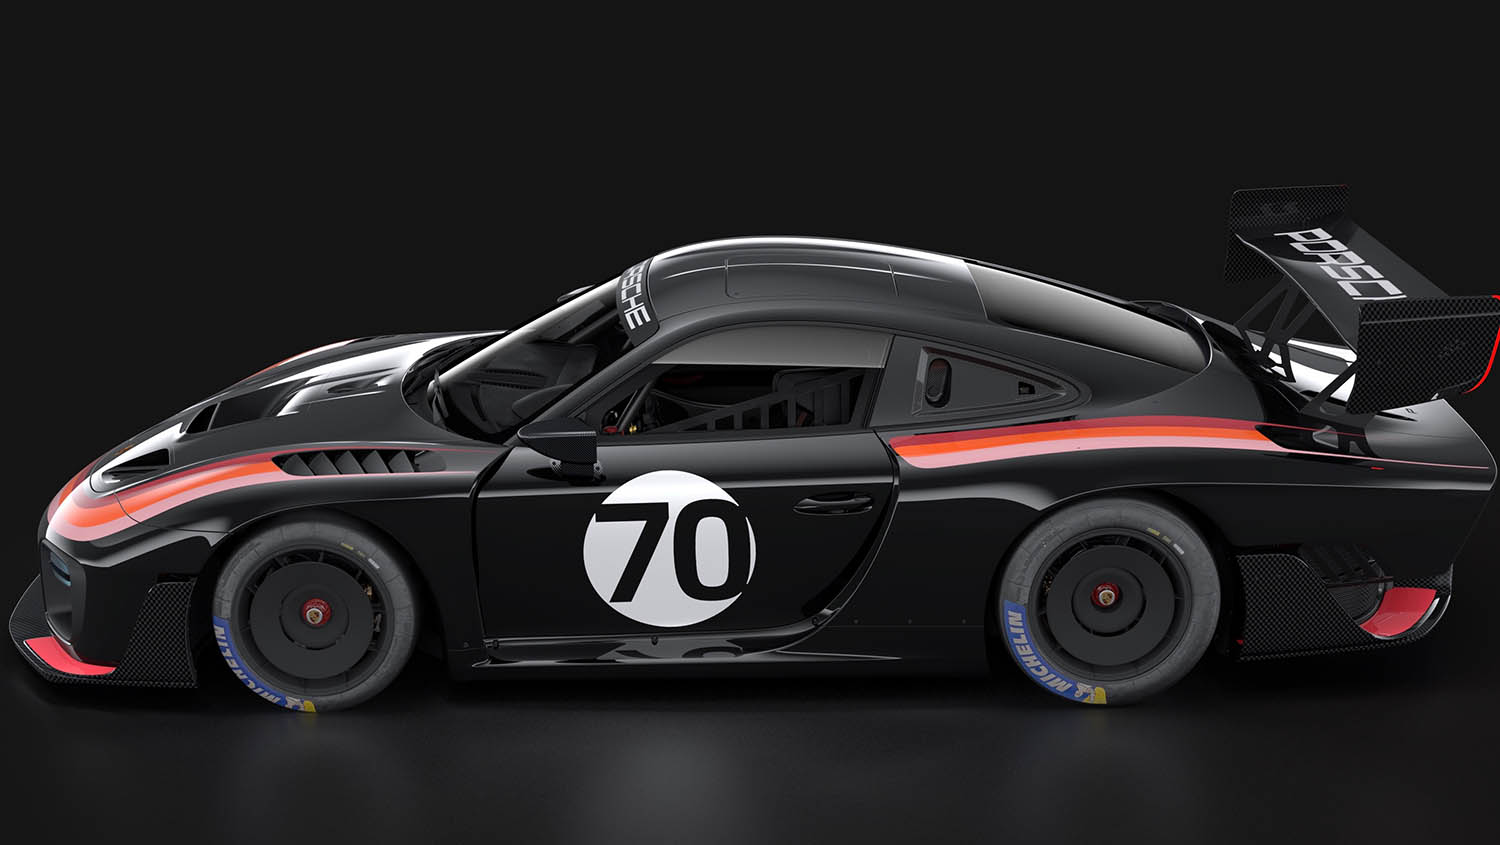 high_porsche_935_livery_interscope_2019_porsche_ag (2).jpg